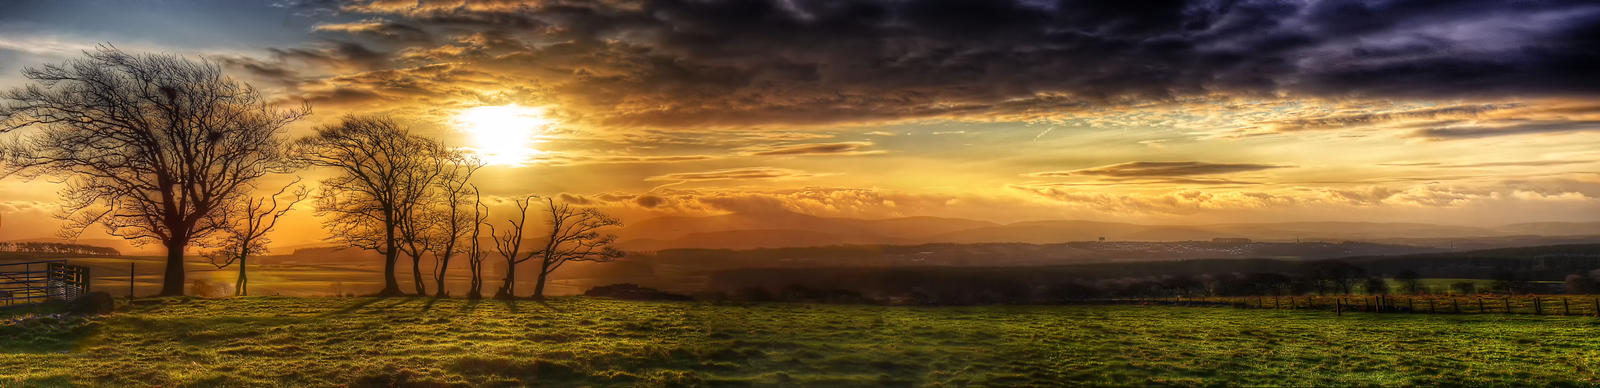 Another new day - panorama by Spyder-art